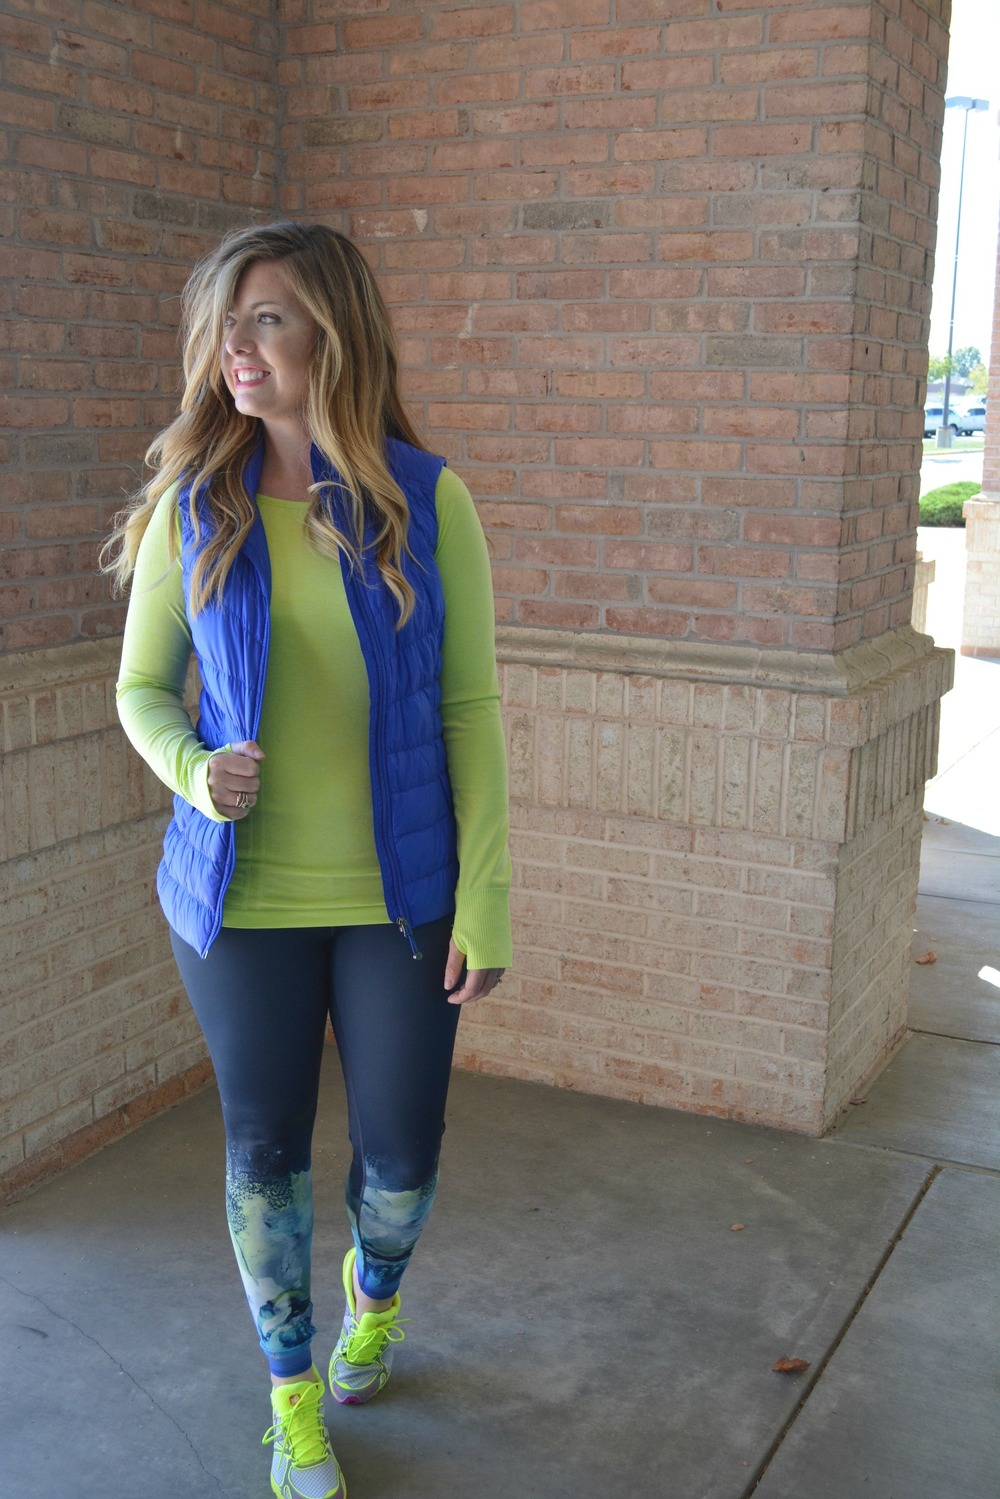 Athleta outfit on Sophisticaited.com